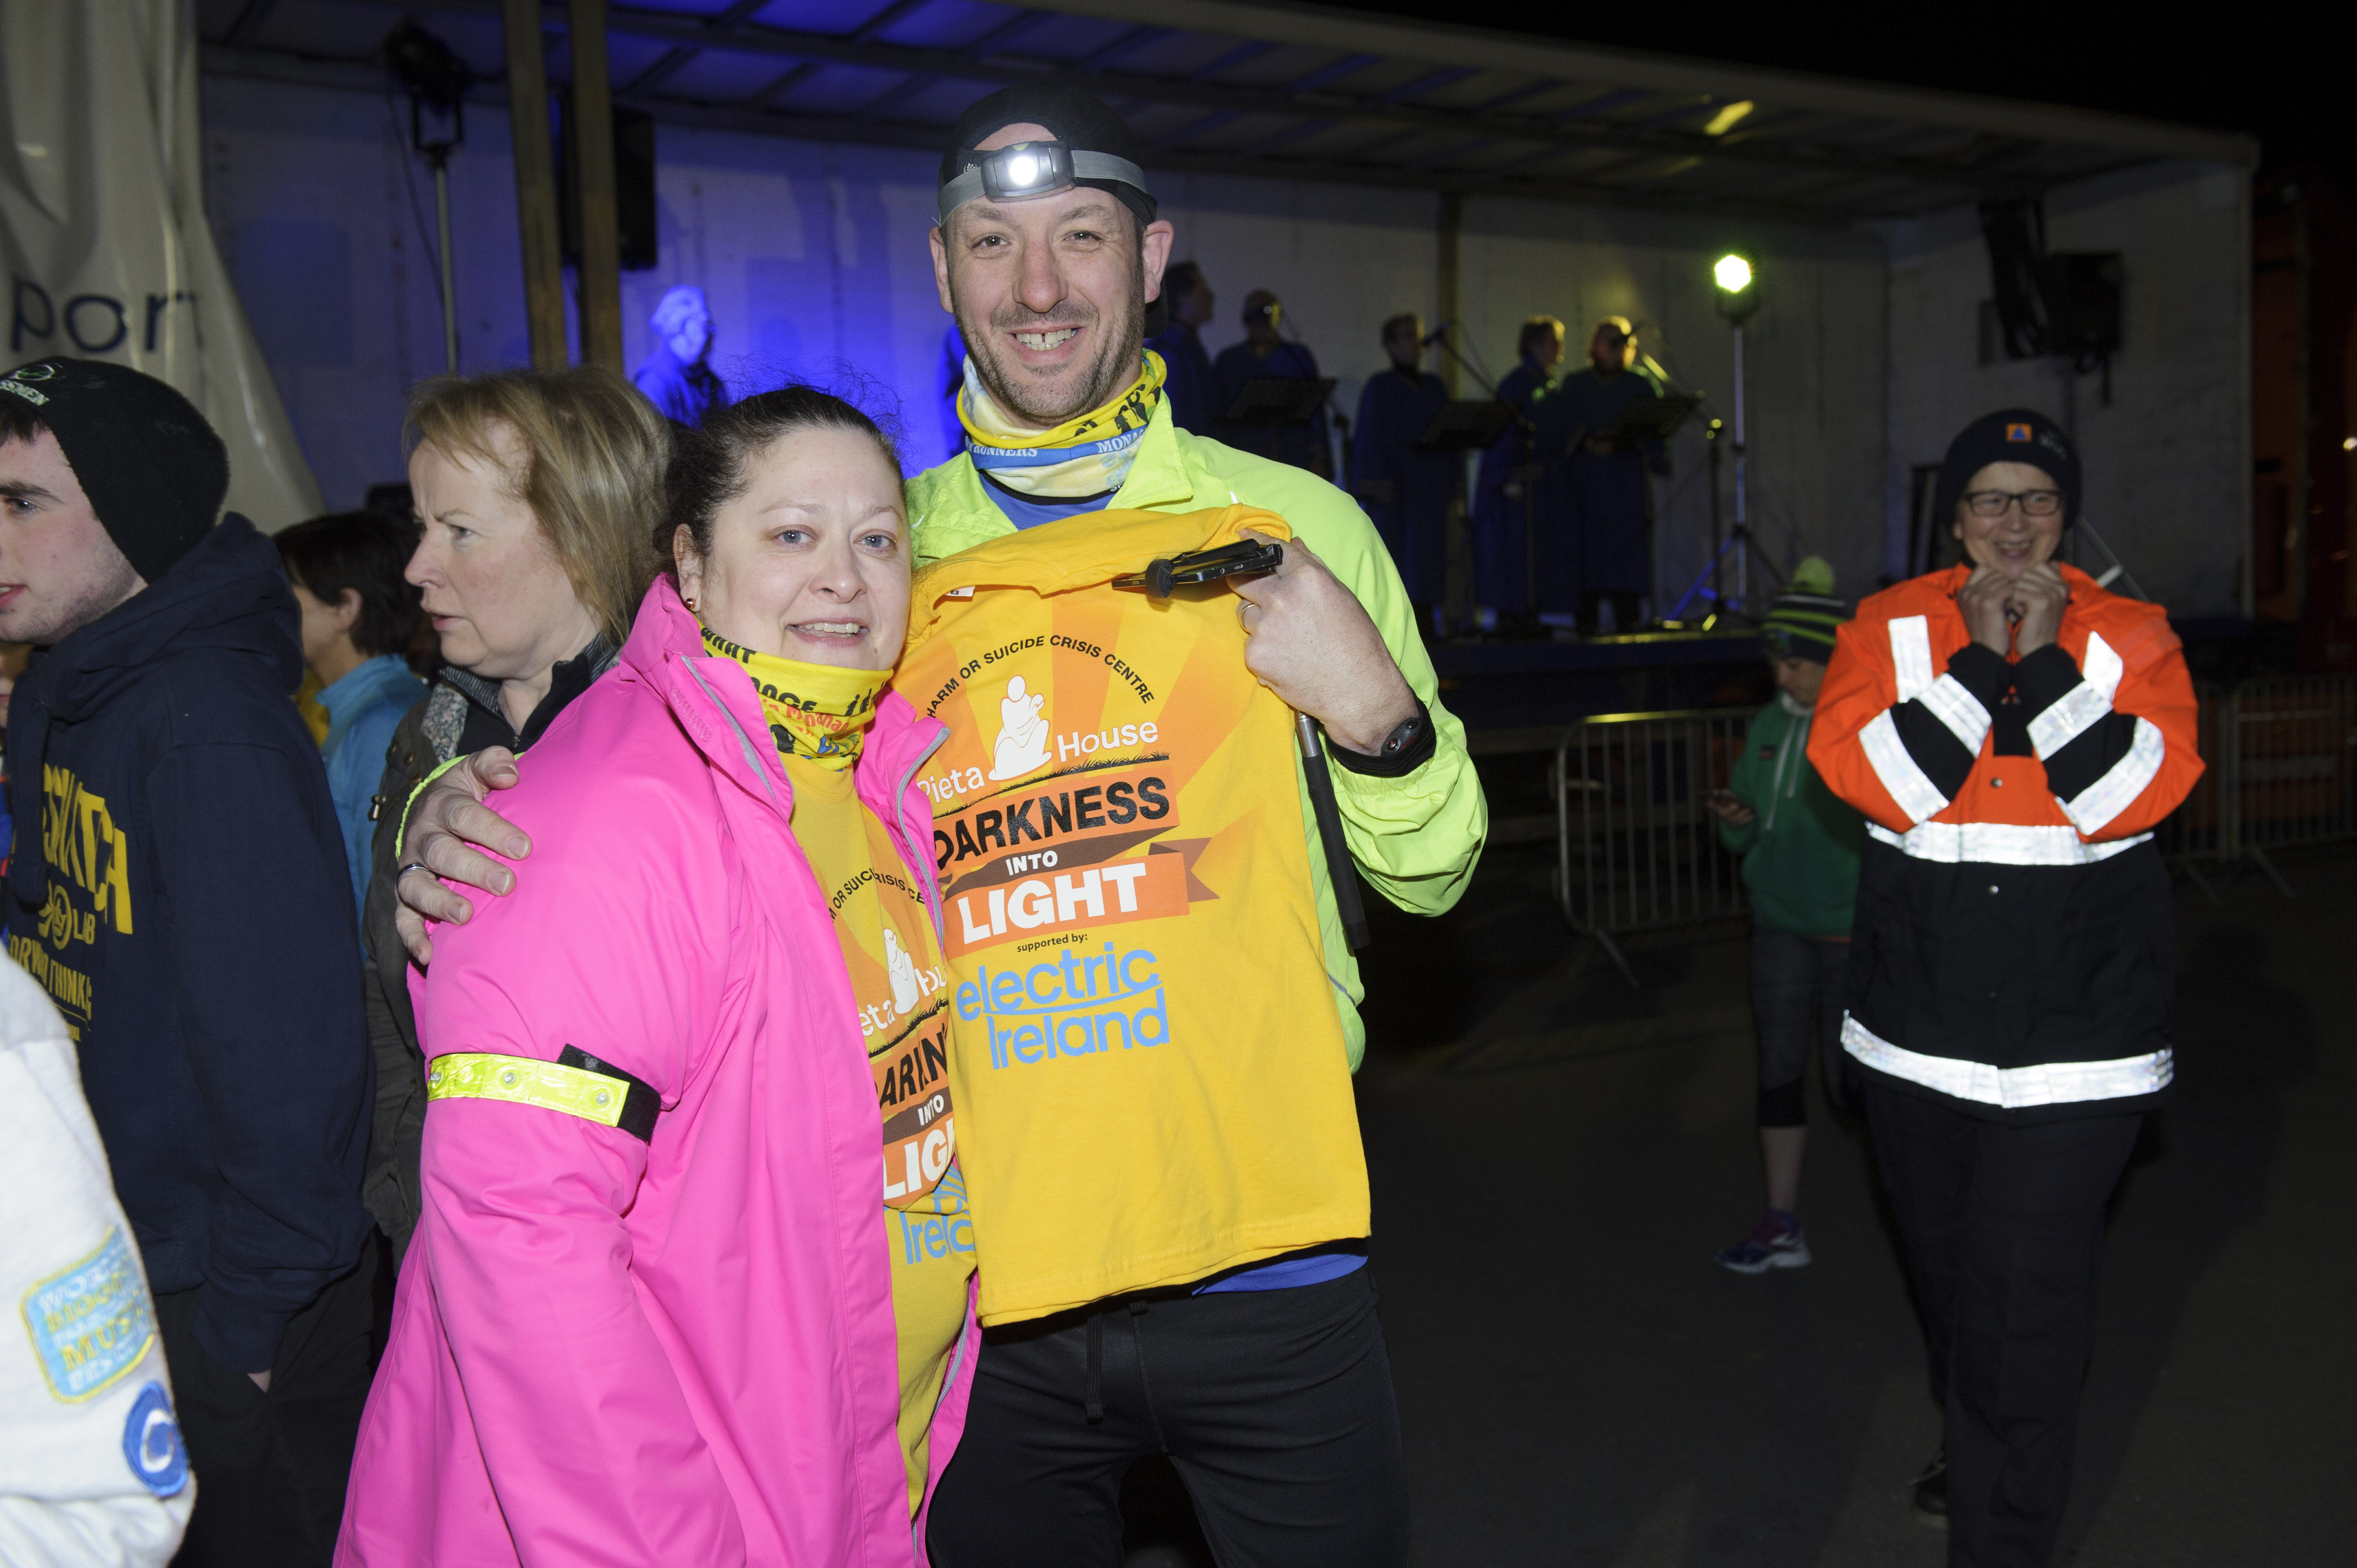 Owen and Suzanne who took part in the Darkness Into Light for Pieta House at the Monaghan Harps GFC. ©Rory Geary/The Northern Standard